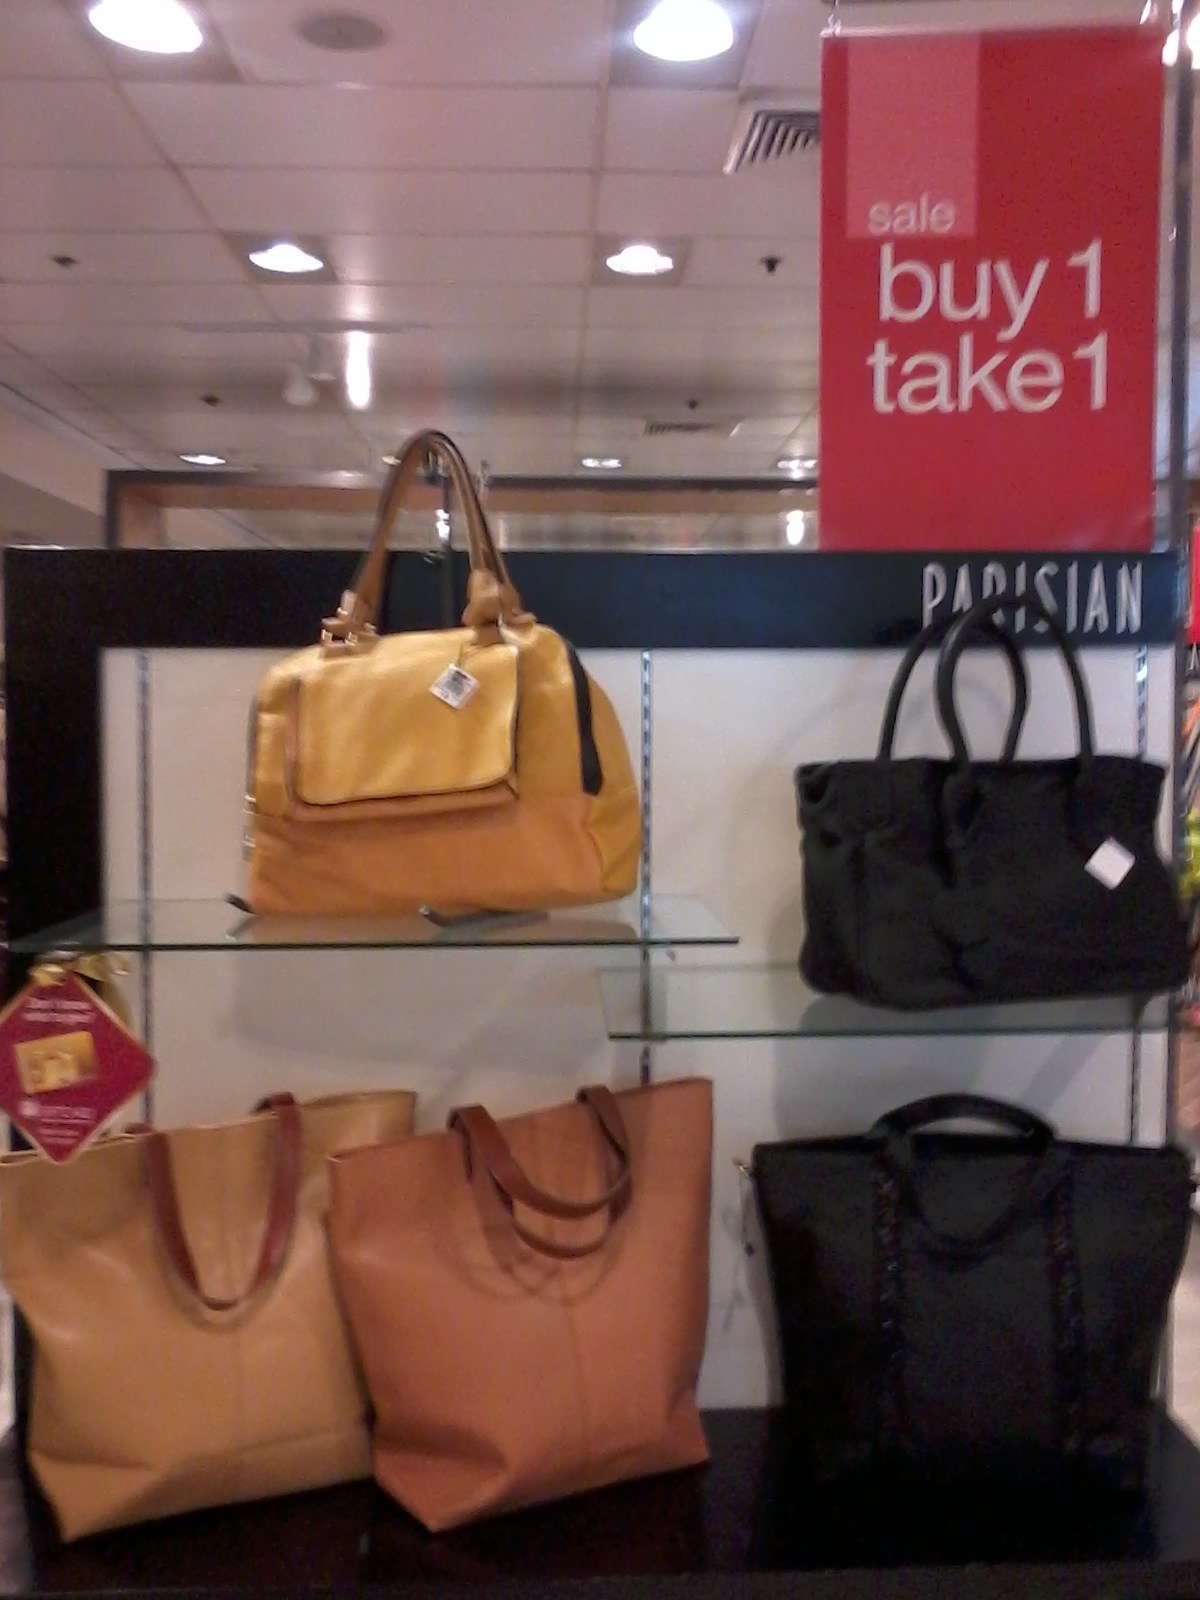 Buy 1 Take 1 on bags